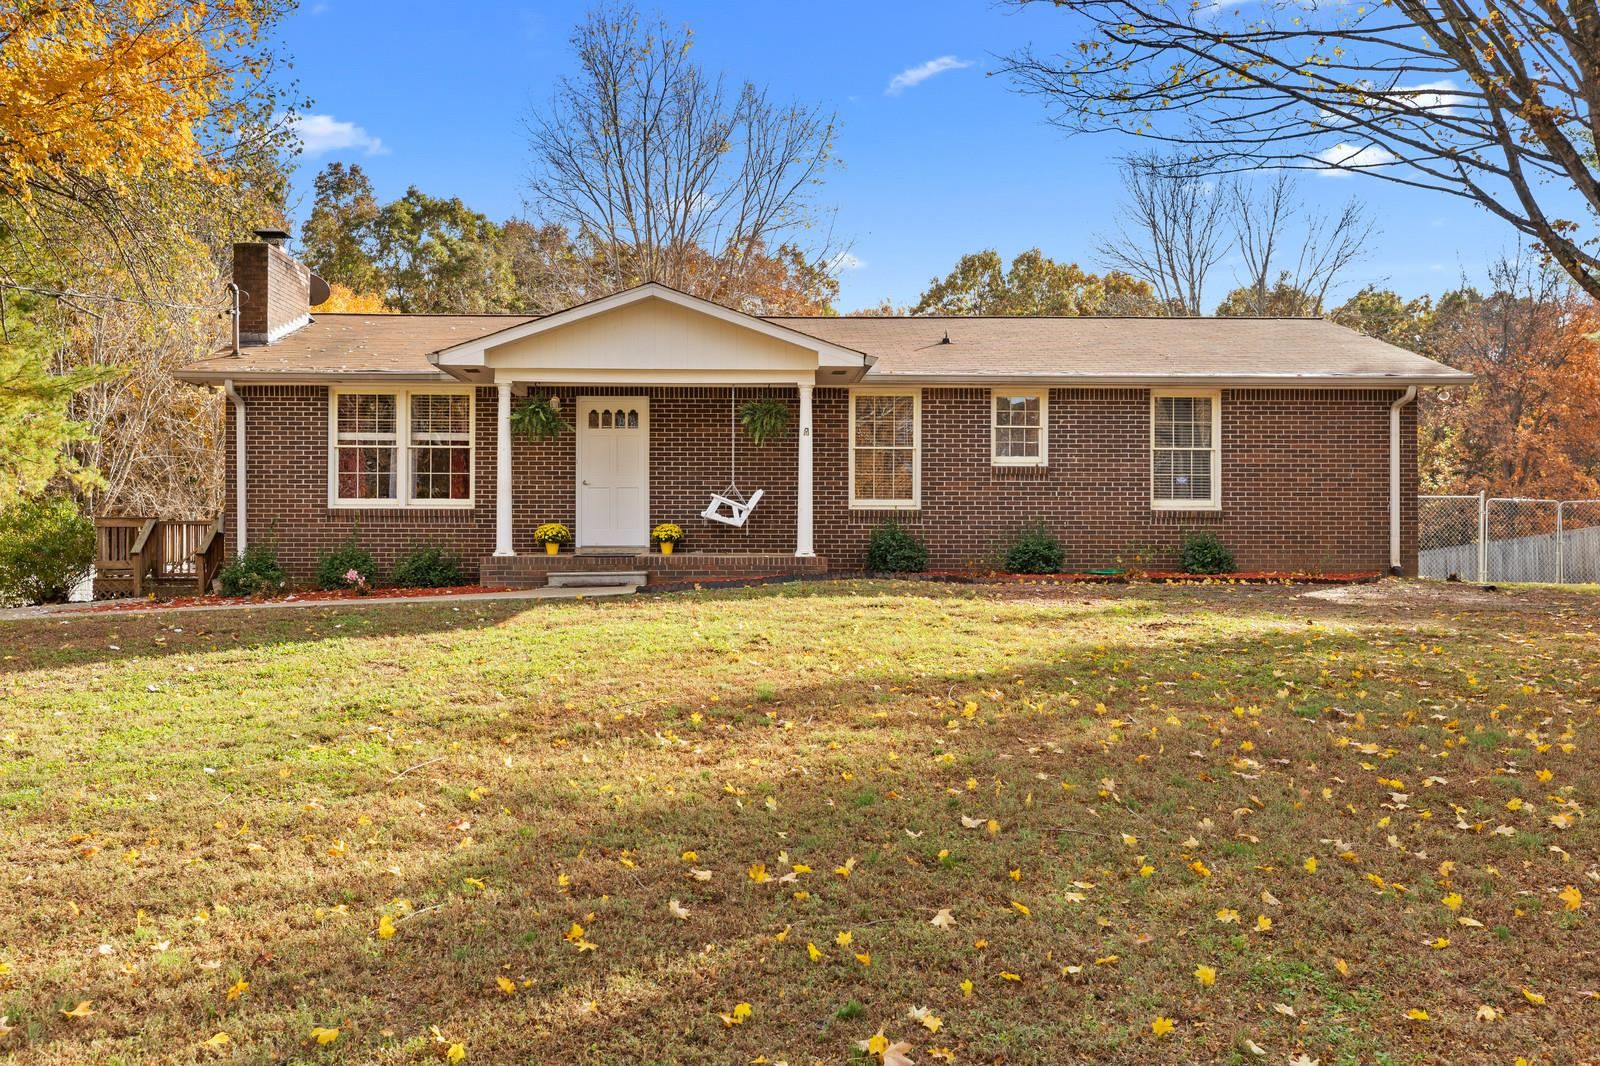 7526 King Rd, Fairview in Williamson County County, TN 37062 Home for Sale